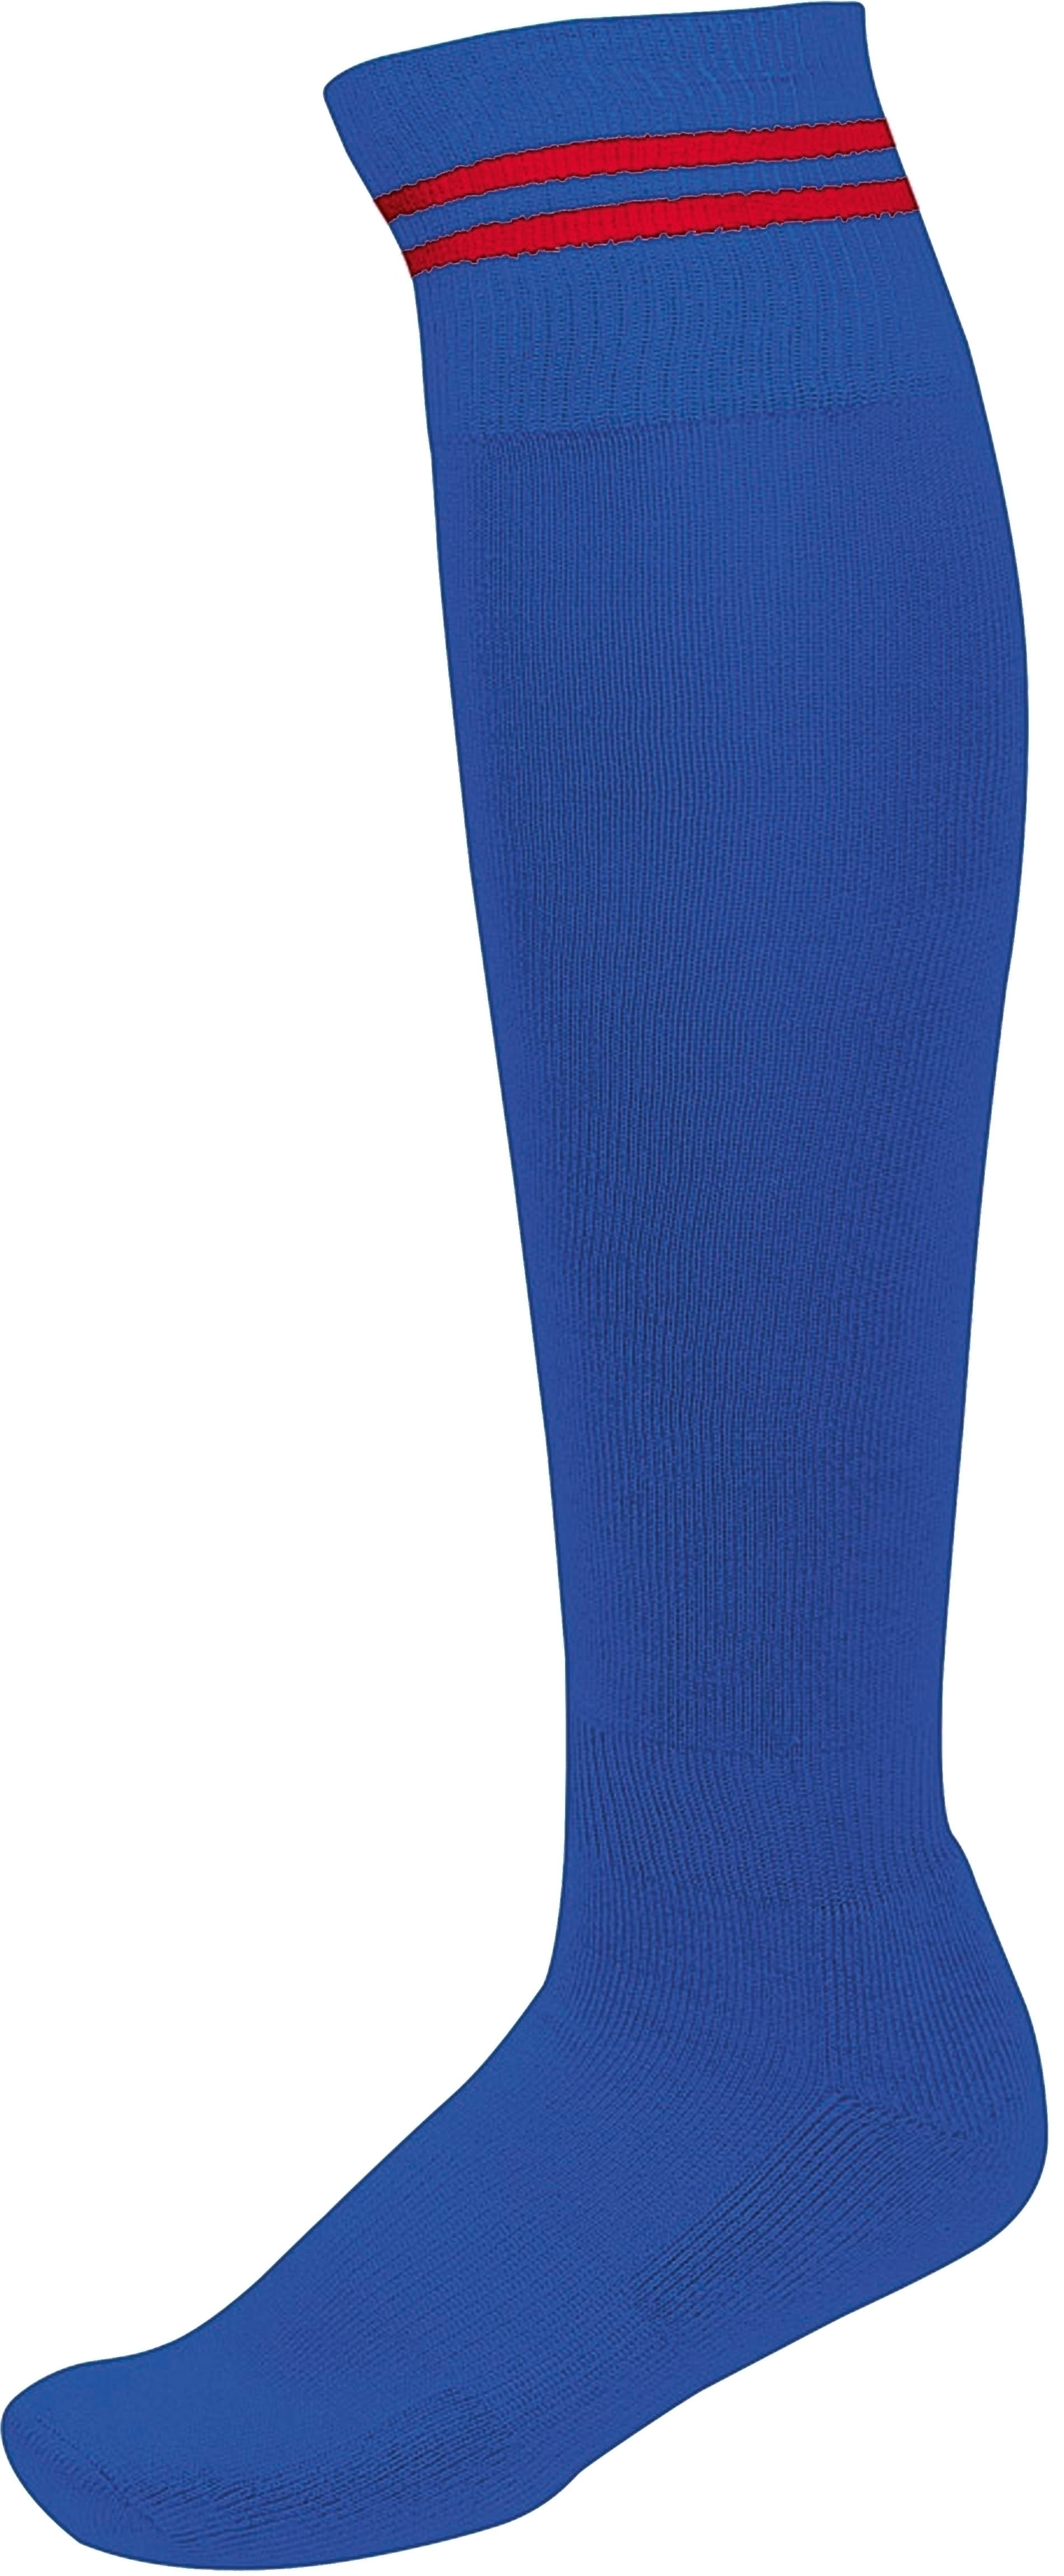 CHAUSSETTES DE SPORT RAYÉES Dark Royal Blue / Sporty Red Bleu